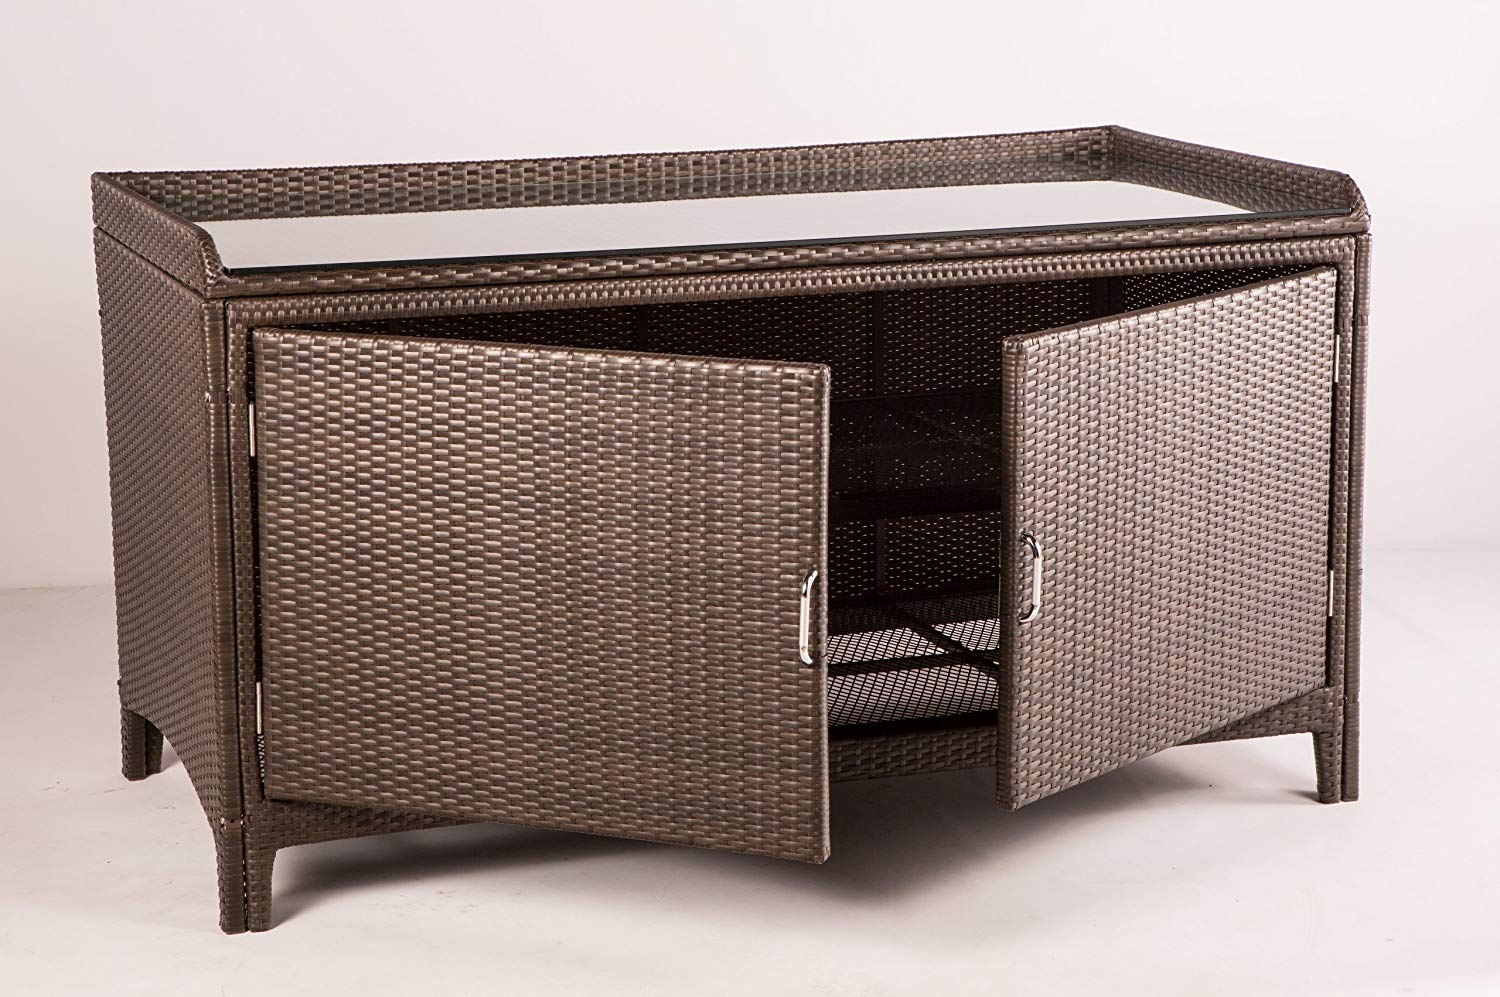 alfresco home all weather wicker outdoor sideboard ewel table console storage patio tables garden acrylic top coffee accent lamps for living room vintage mid century modern dining